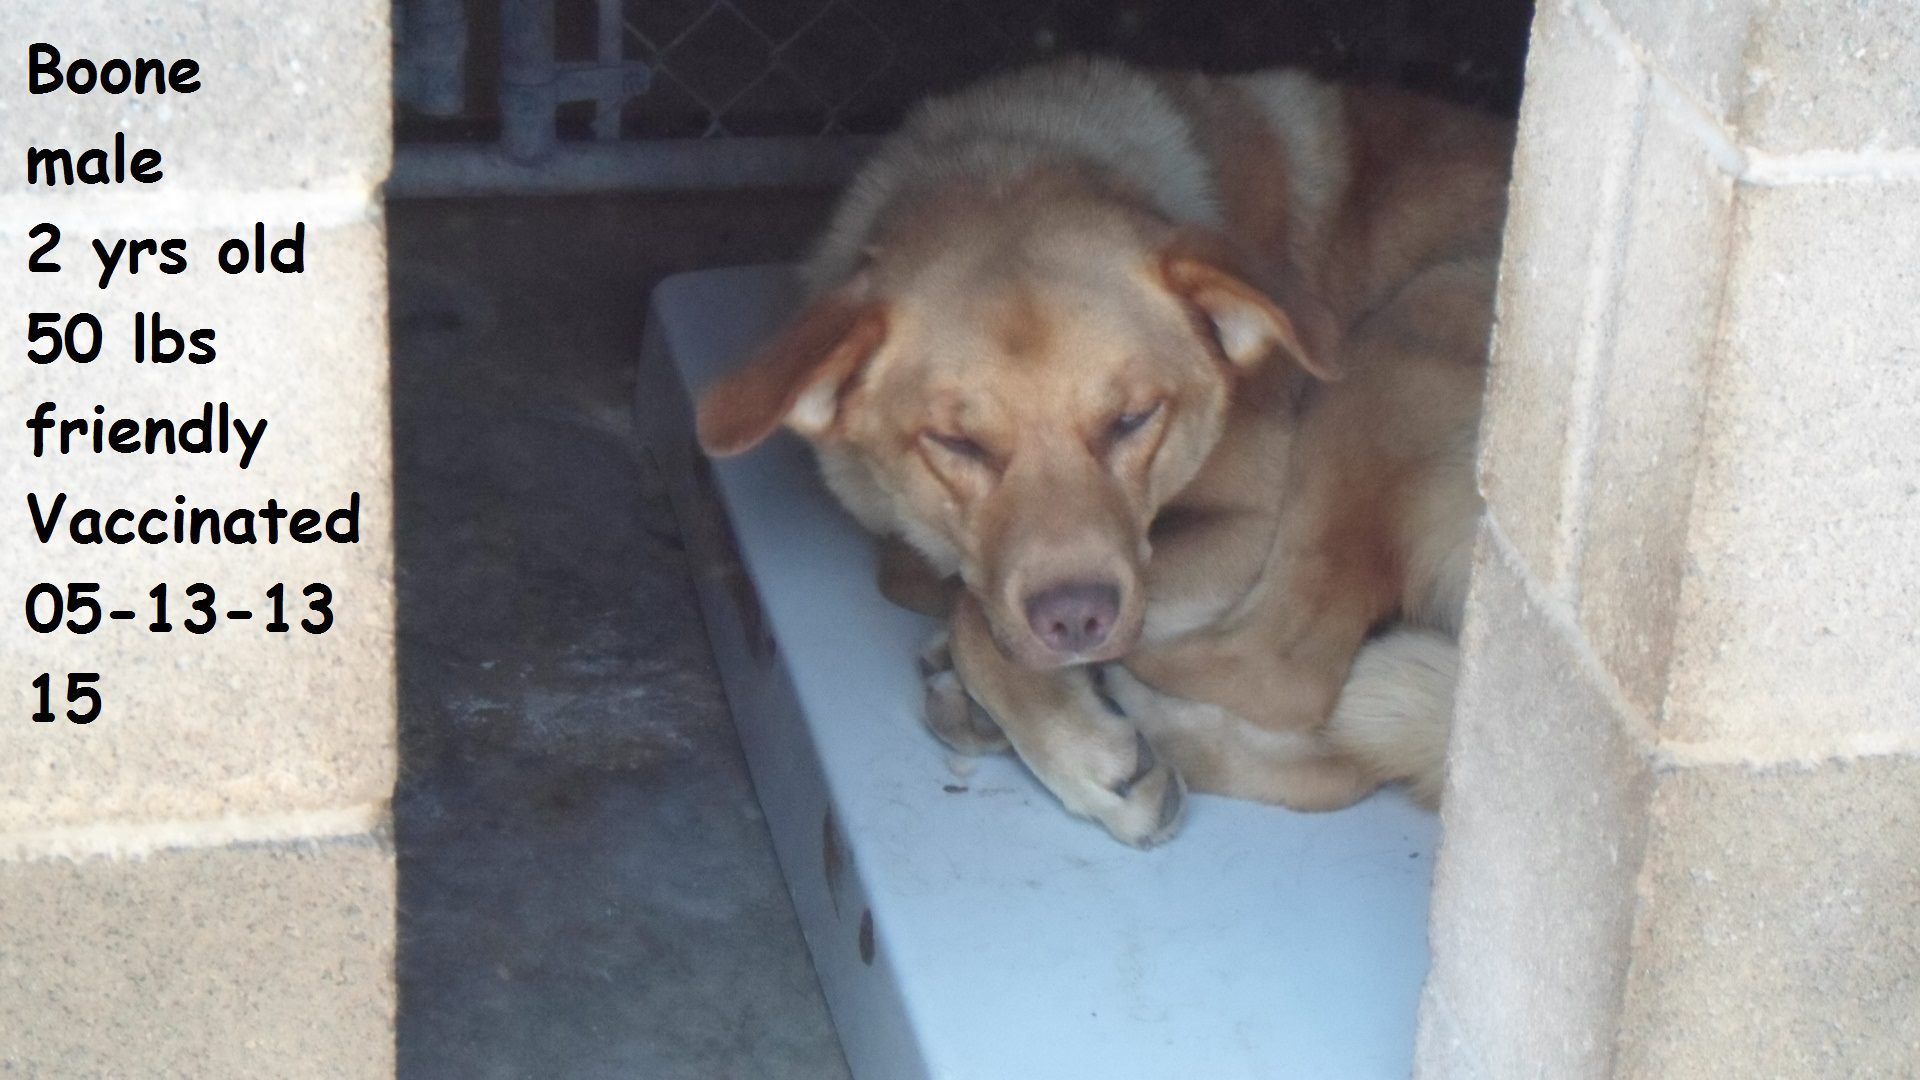 #URGENT - Hazard, KY I'm BOONE and I'm a male 2 year old dog with lots of love to give, can you give me a new home please?